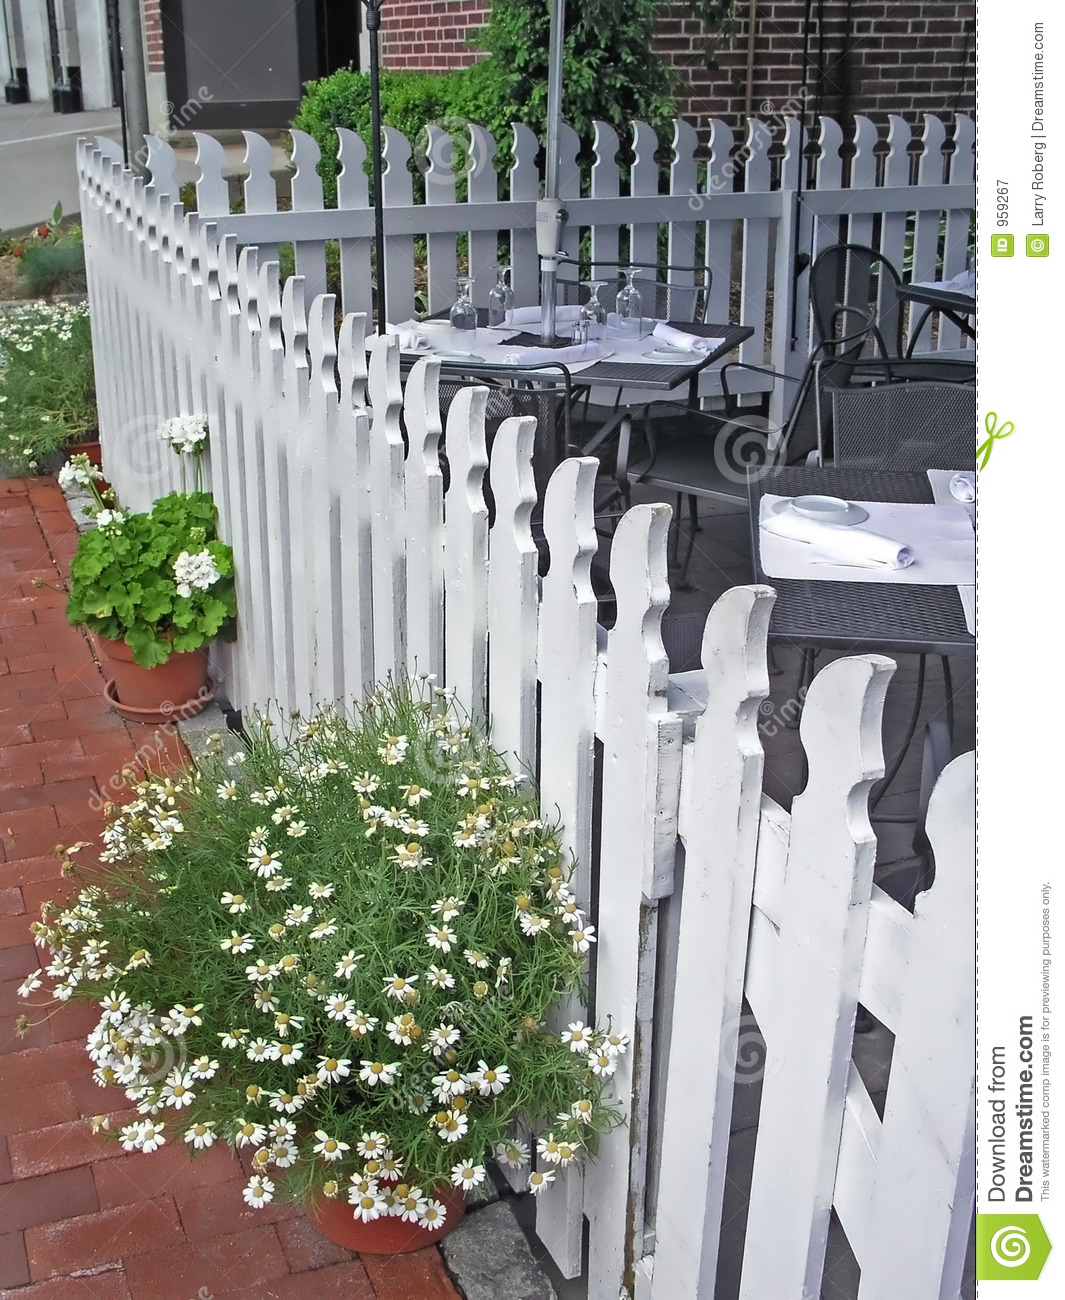 Fence At Outdoor Restaurant Stock Image - Image of summer ...